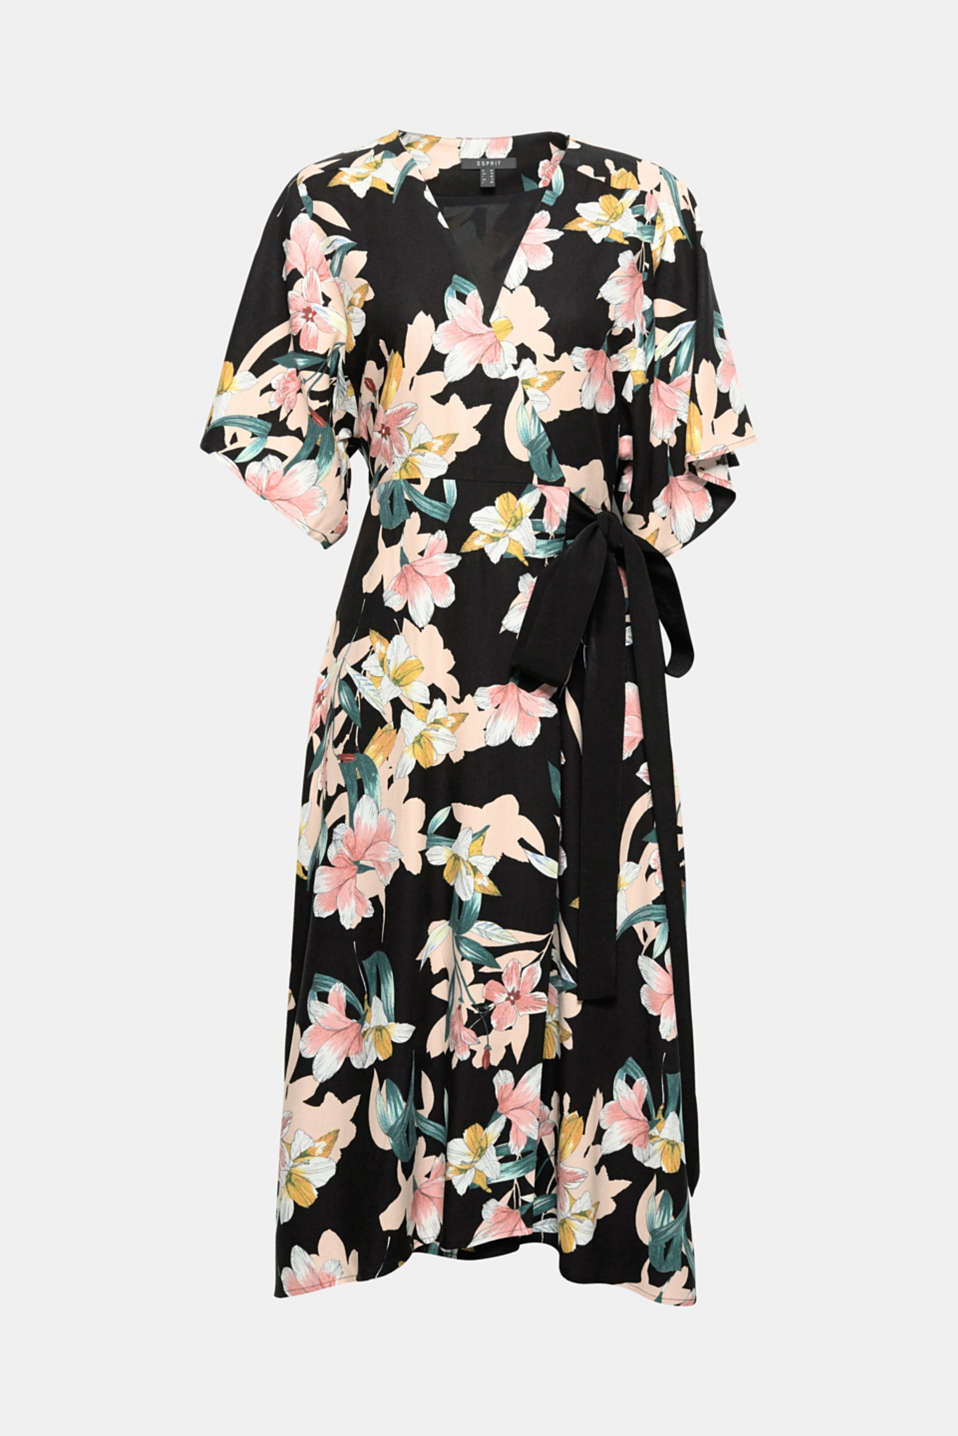 Inspired by Asia: you will quickly become the fashion centre of the room in this stylish midi dress made of flowing crêpe with a distinctive, colourful floral print and feminine wrap-over effect!